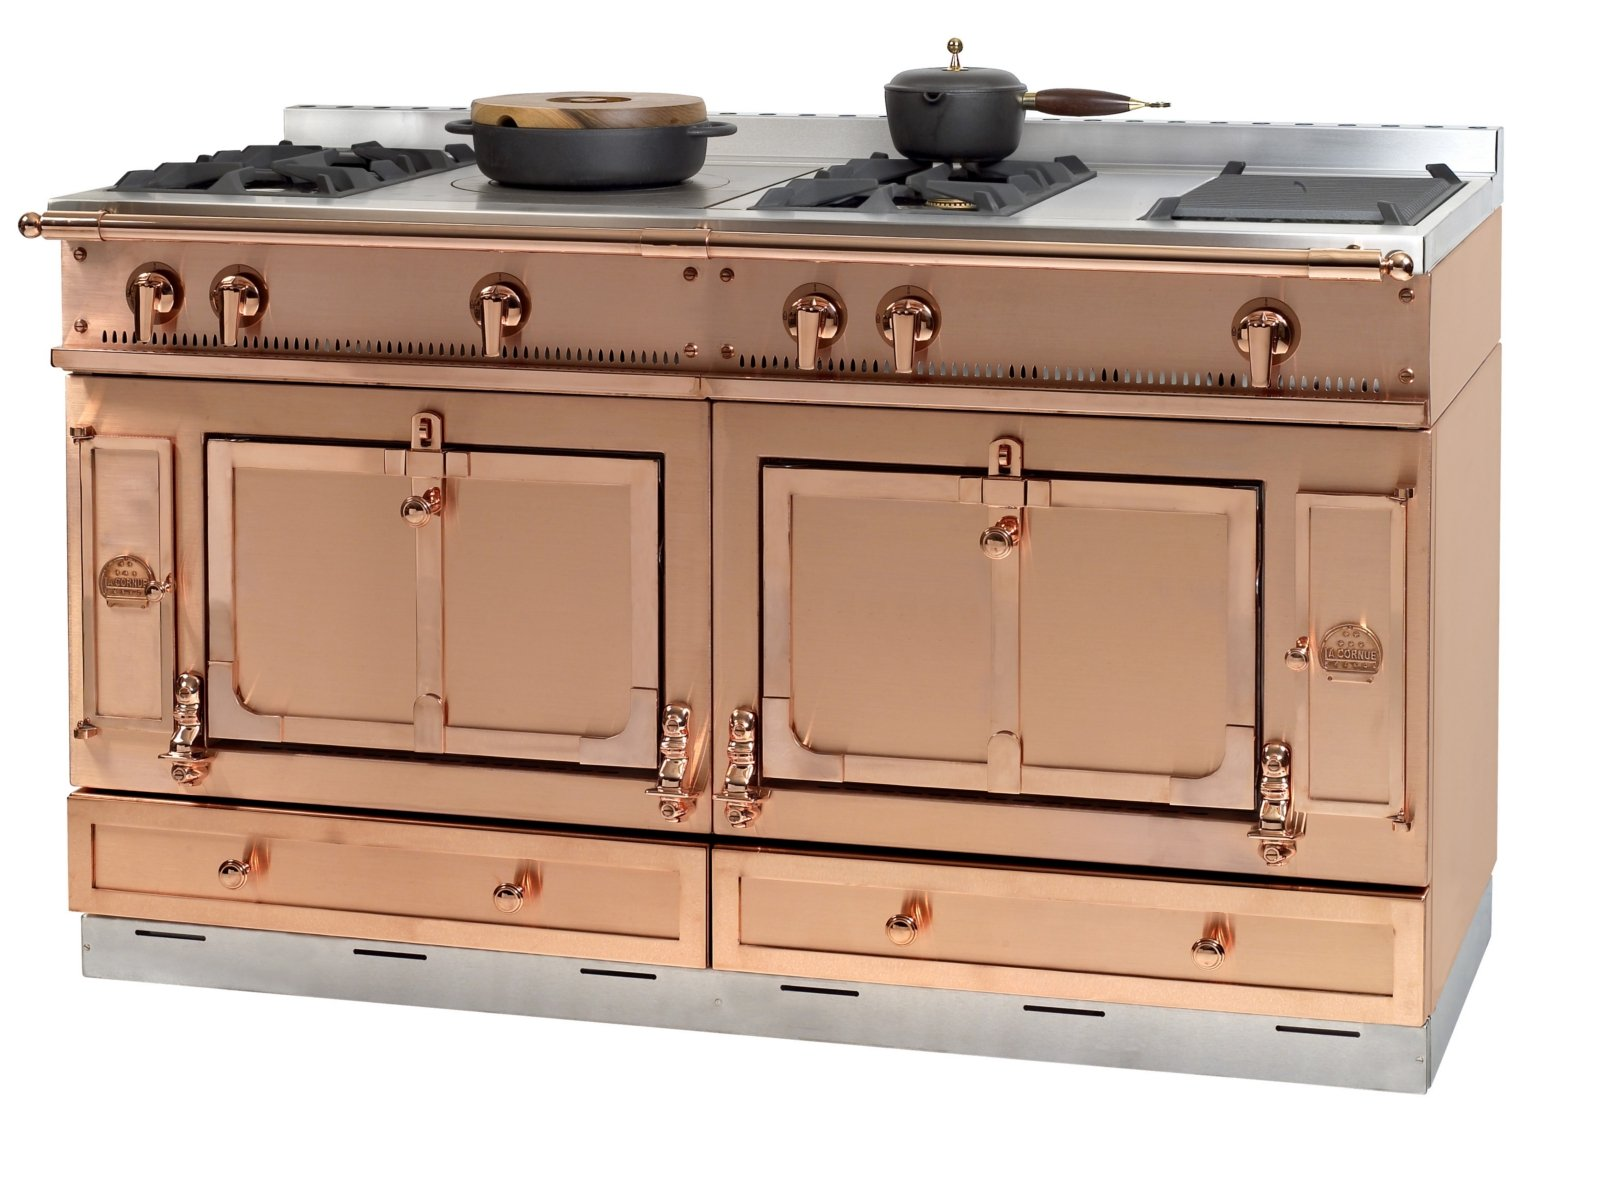 Stainless steel cooker CHÂTEAU 150 by La Cornue